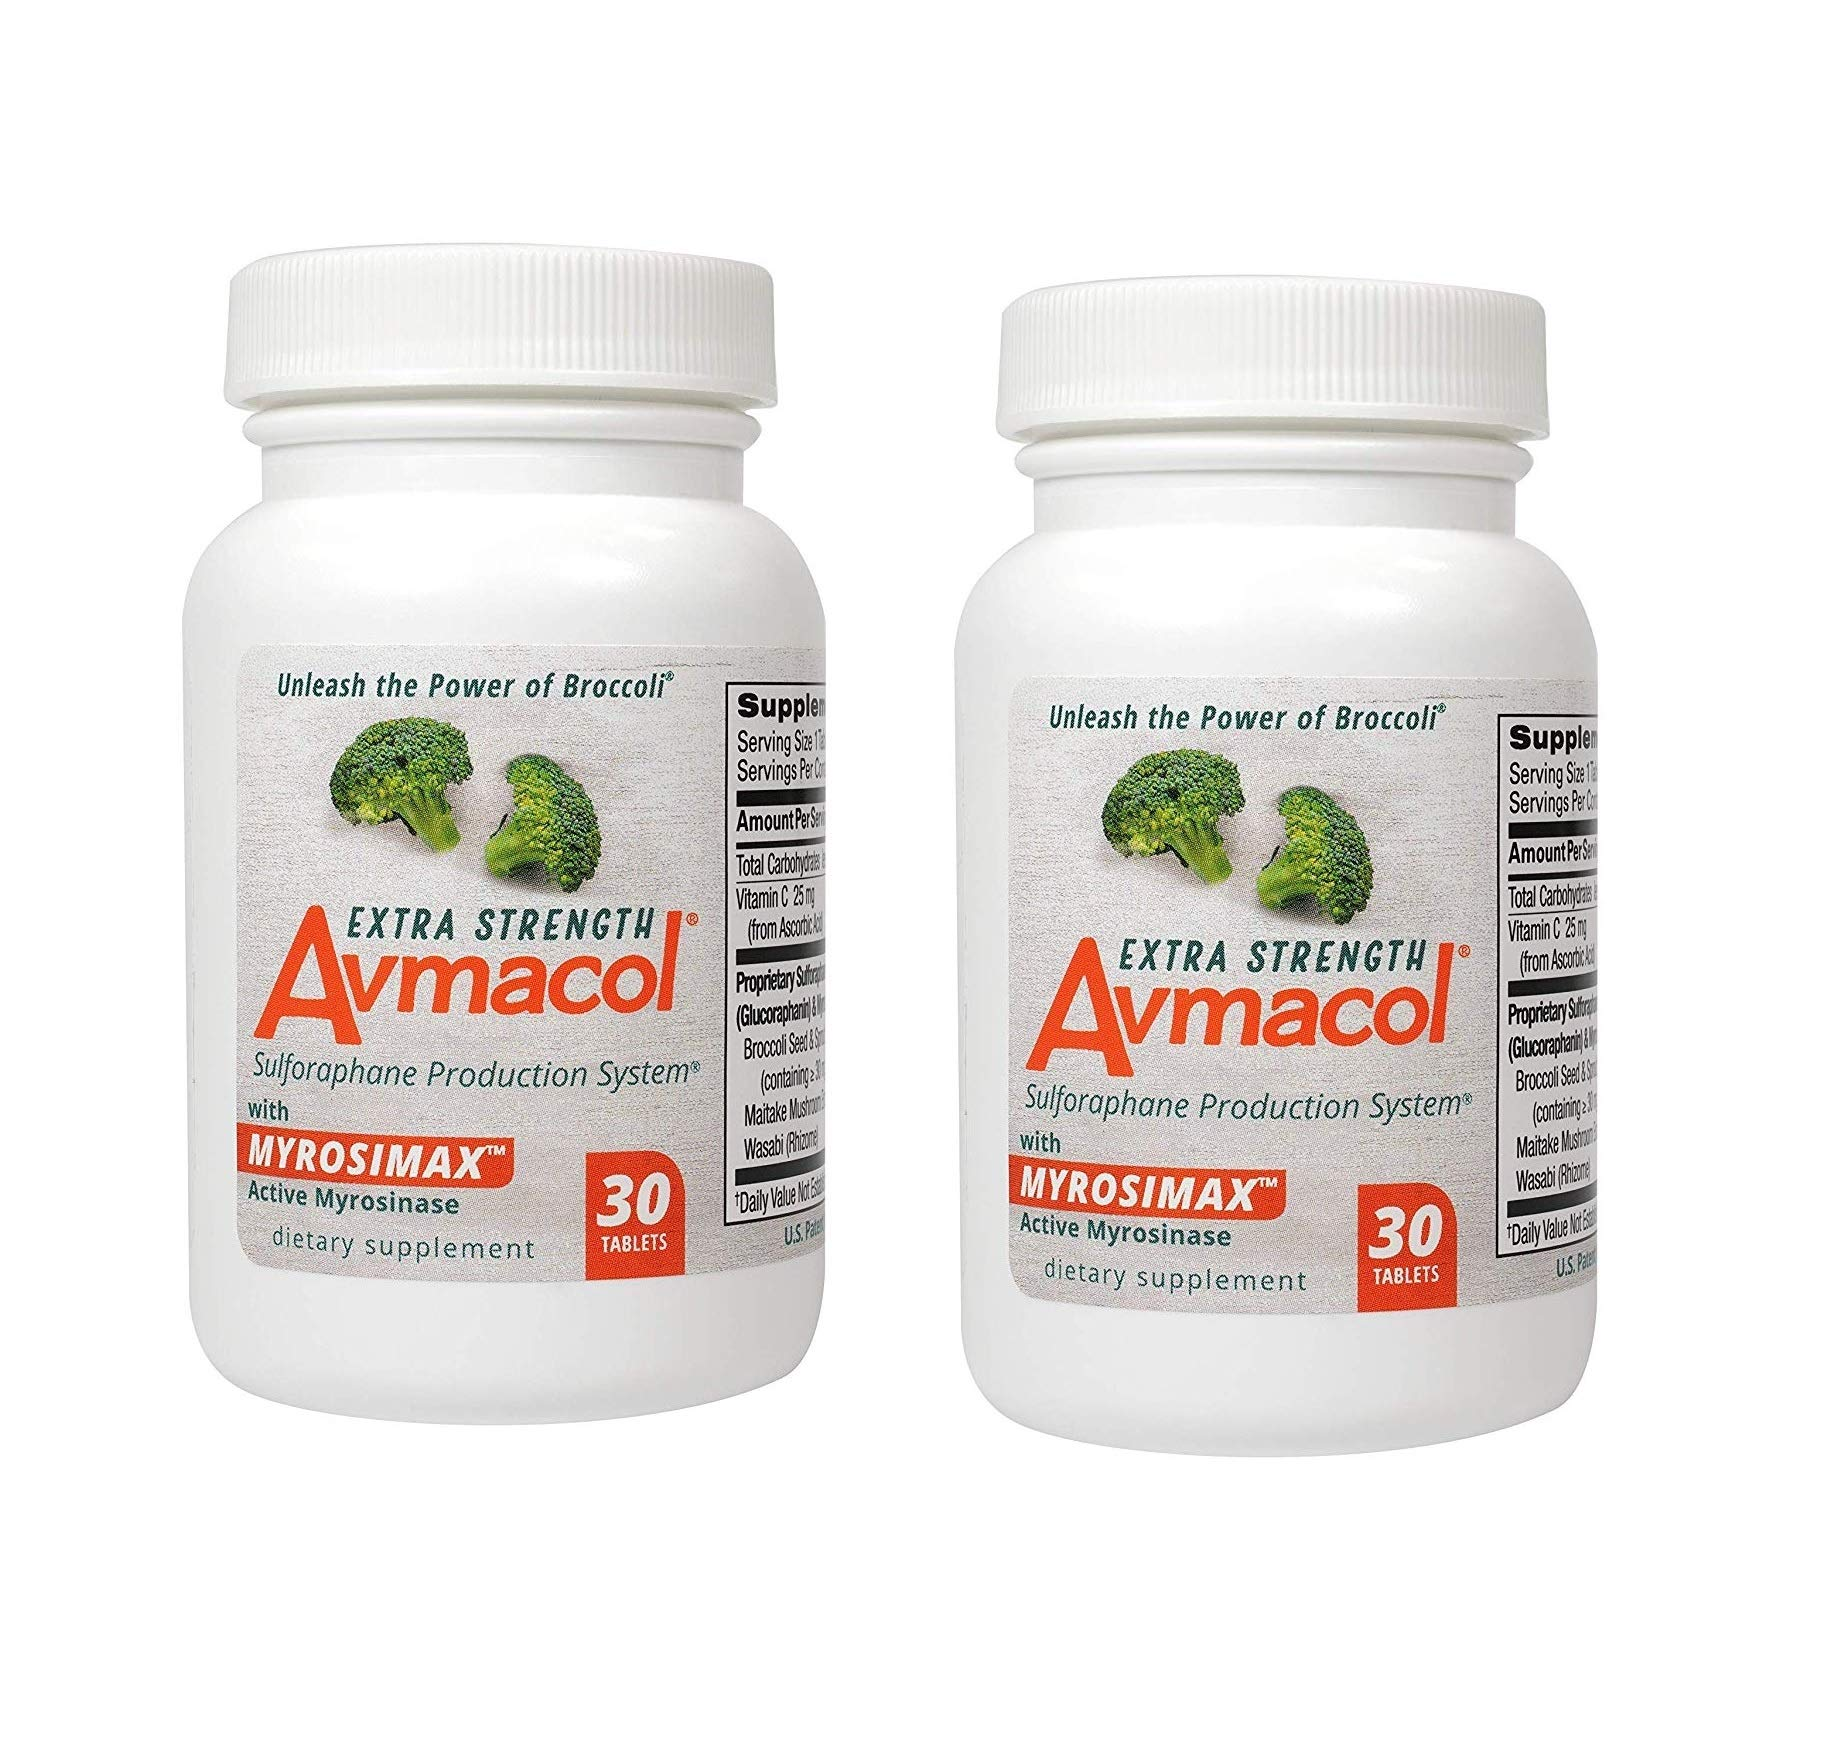 Avmacol Extra Strength Sulforaphane Production System for Immune Support, 60 Tablets